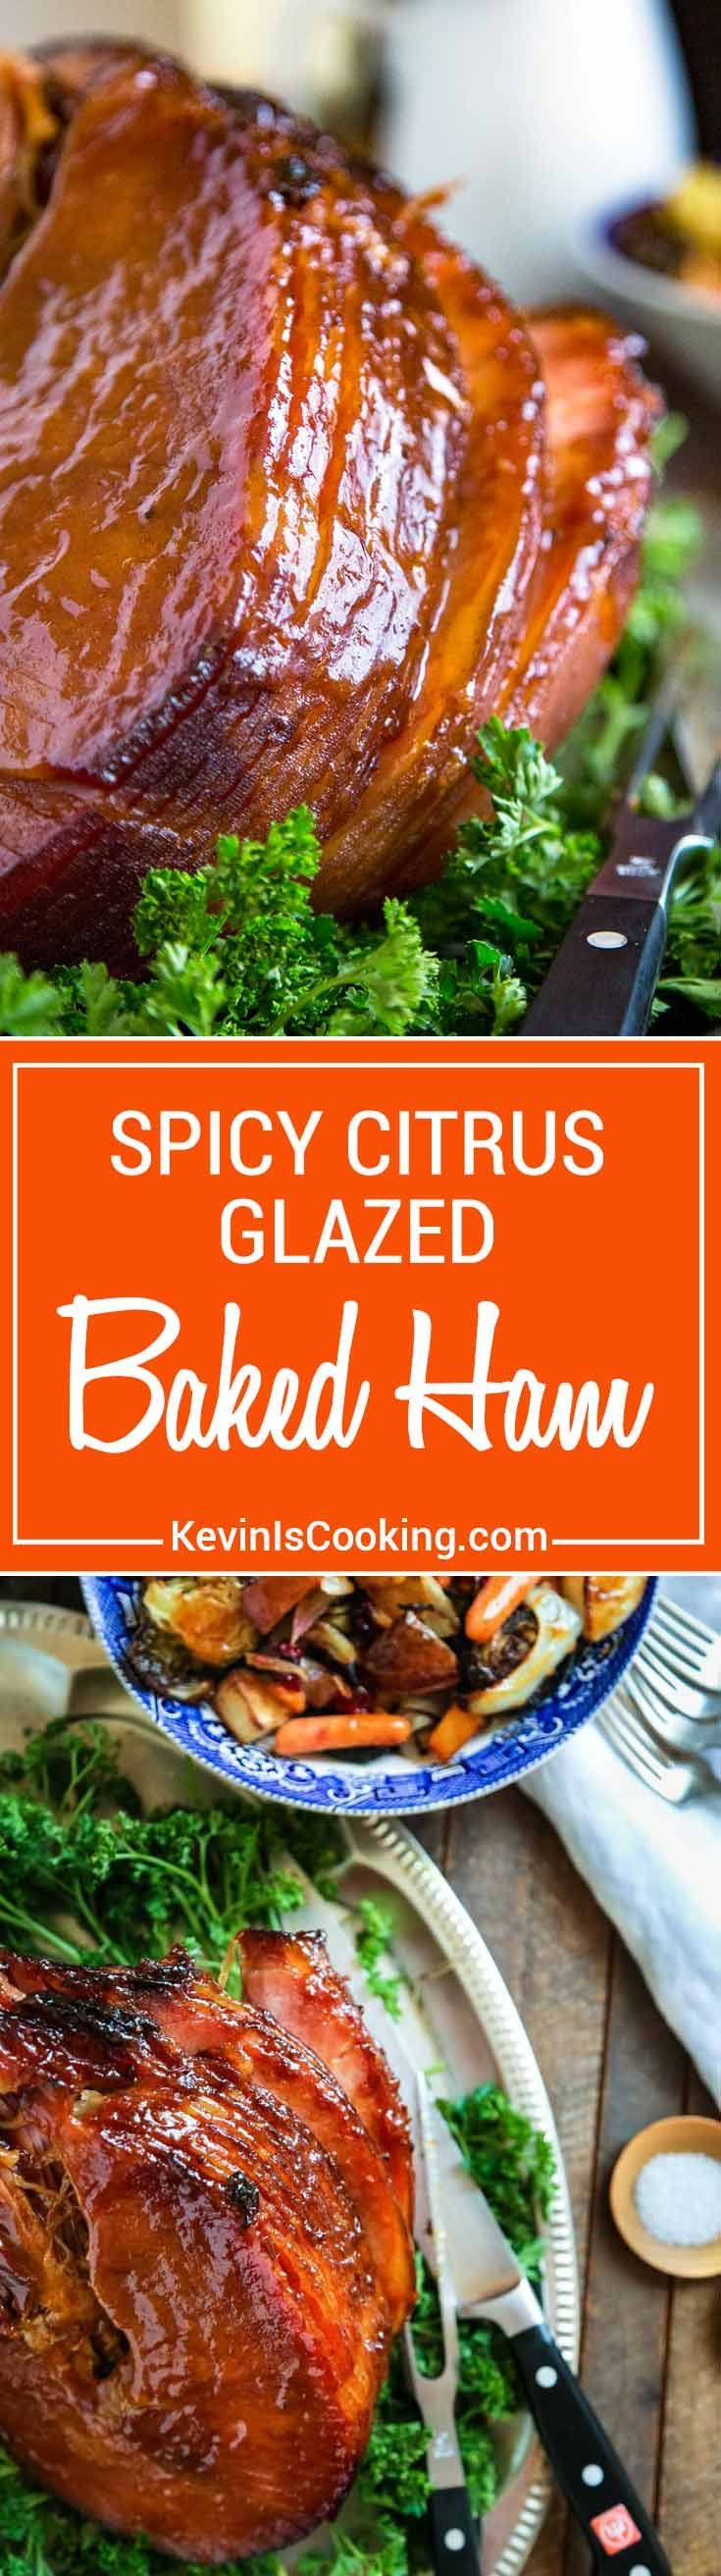 The family LOVES this one! This Spicy Citrus Baked Ham Glaze develops a wonderful, caramelized crust that's just mouthwatering using orange juice, cinnamon, clove and chipotle powder. via @keviniscooking